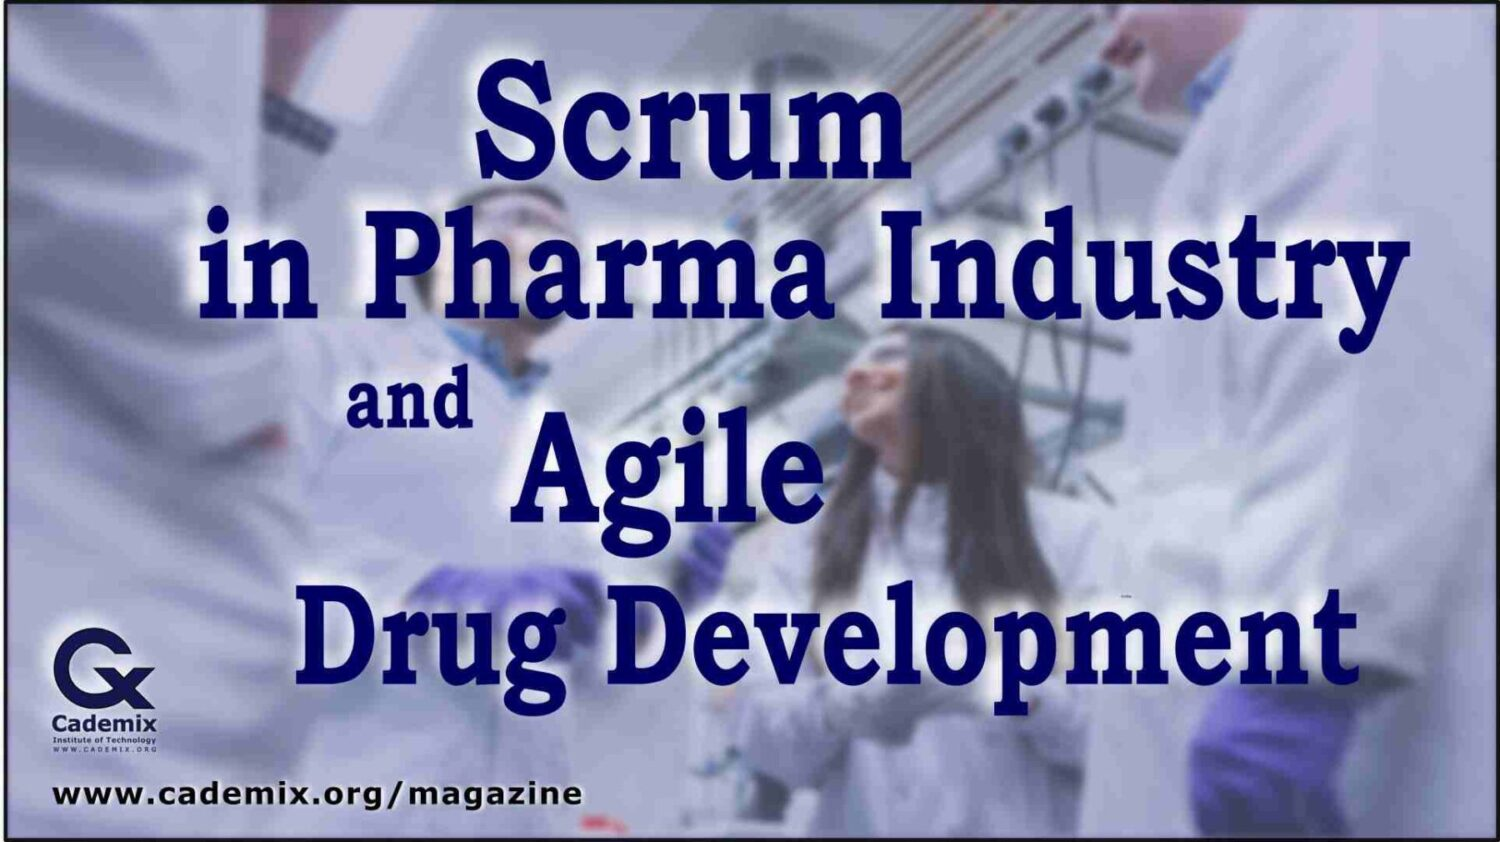 Scrum in Pharma Industry and Agile Drug Development Cademix Magazine Article by Karima Aboukal